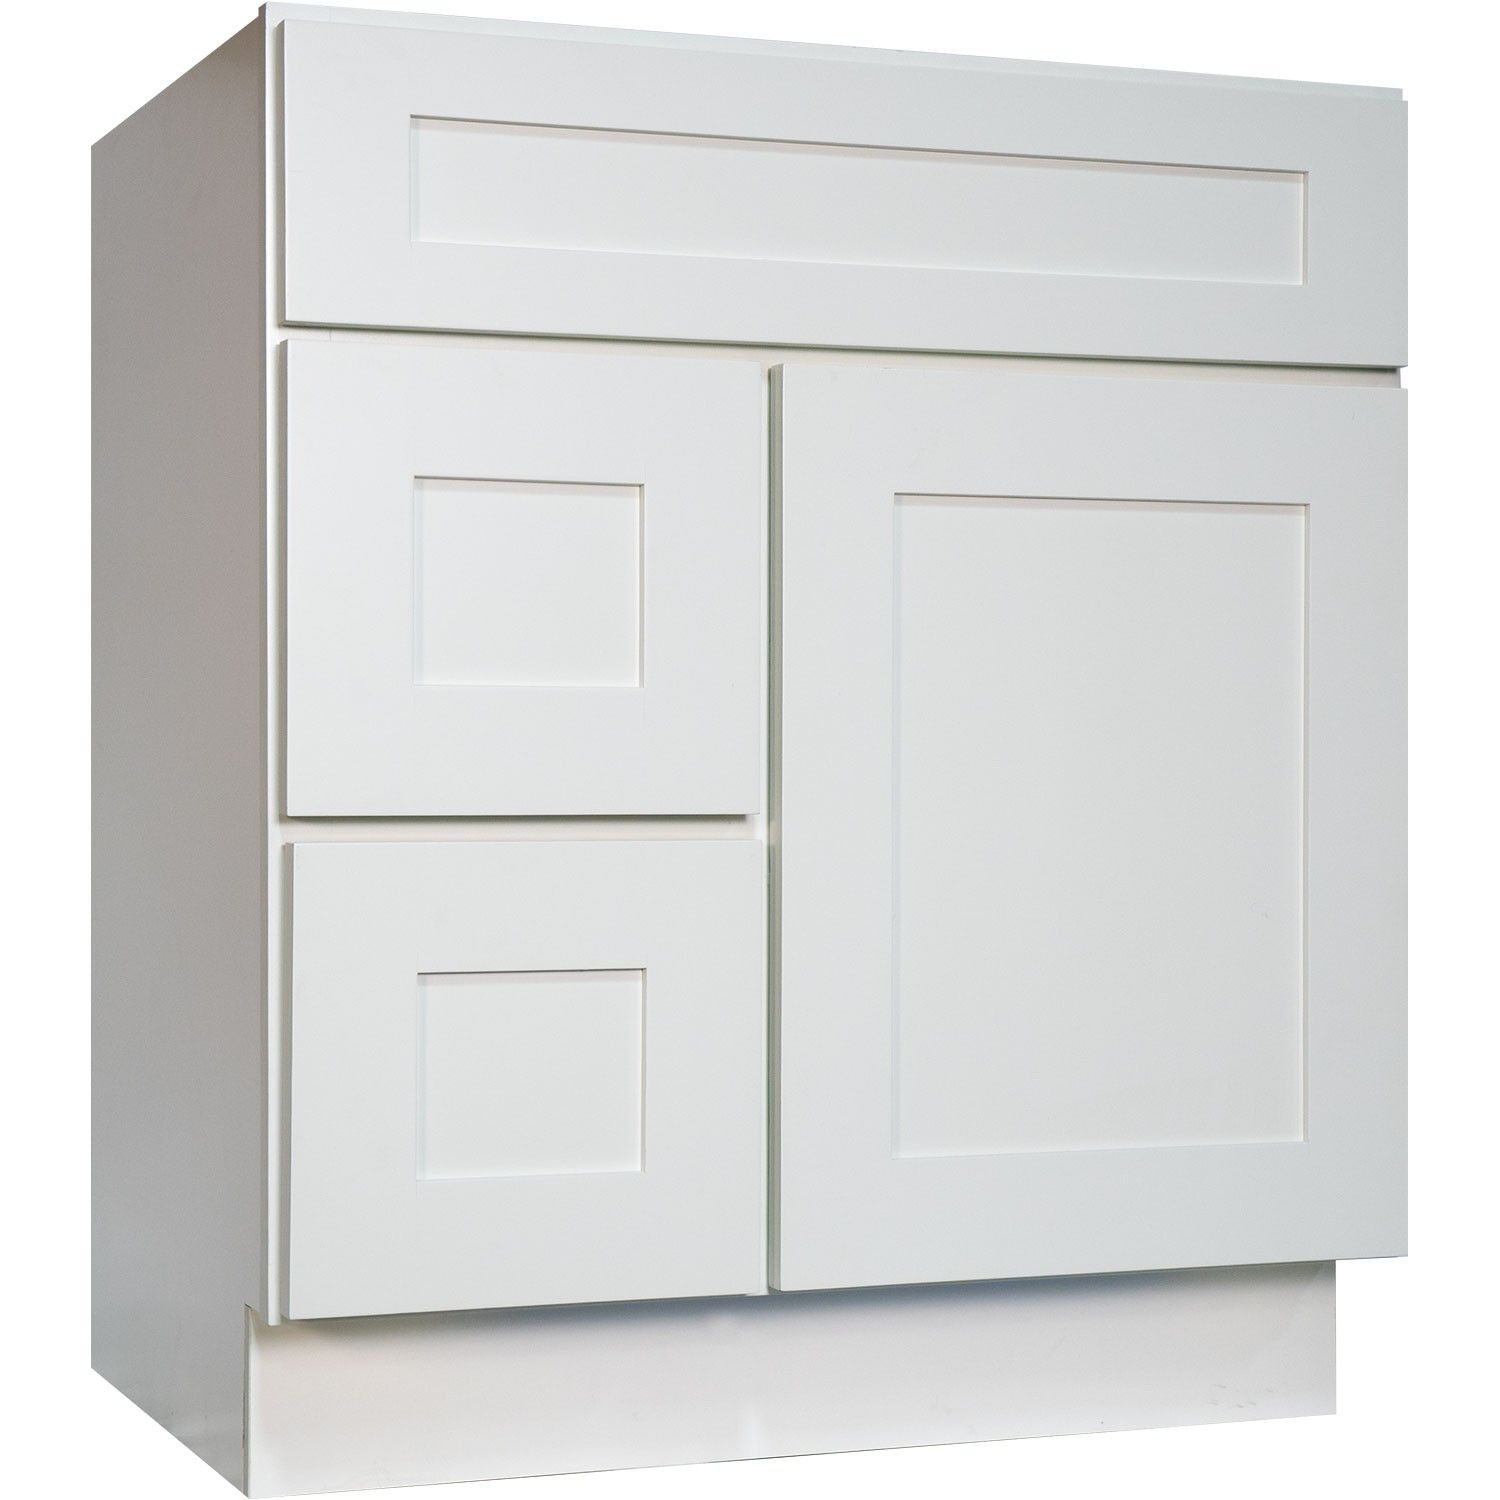 The Awesome Web  Inch Bathroom Vanity Single Sink Cabinet in Shaker White with Soft Close Drawers u Door